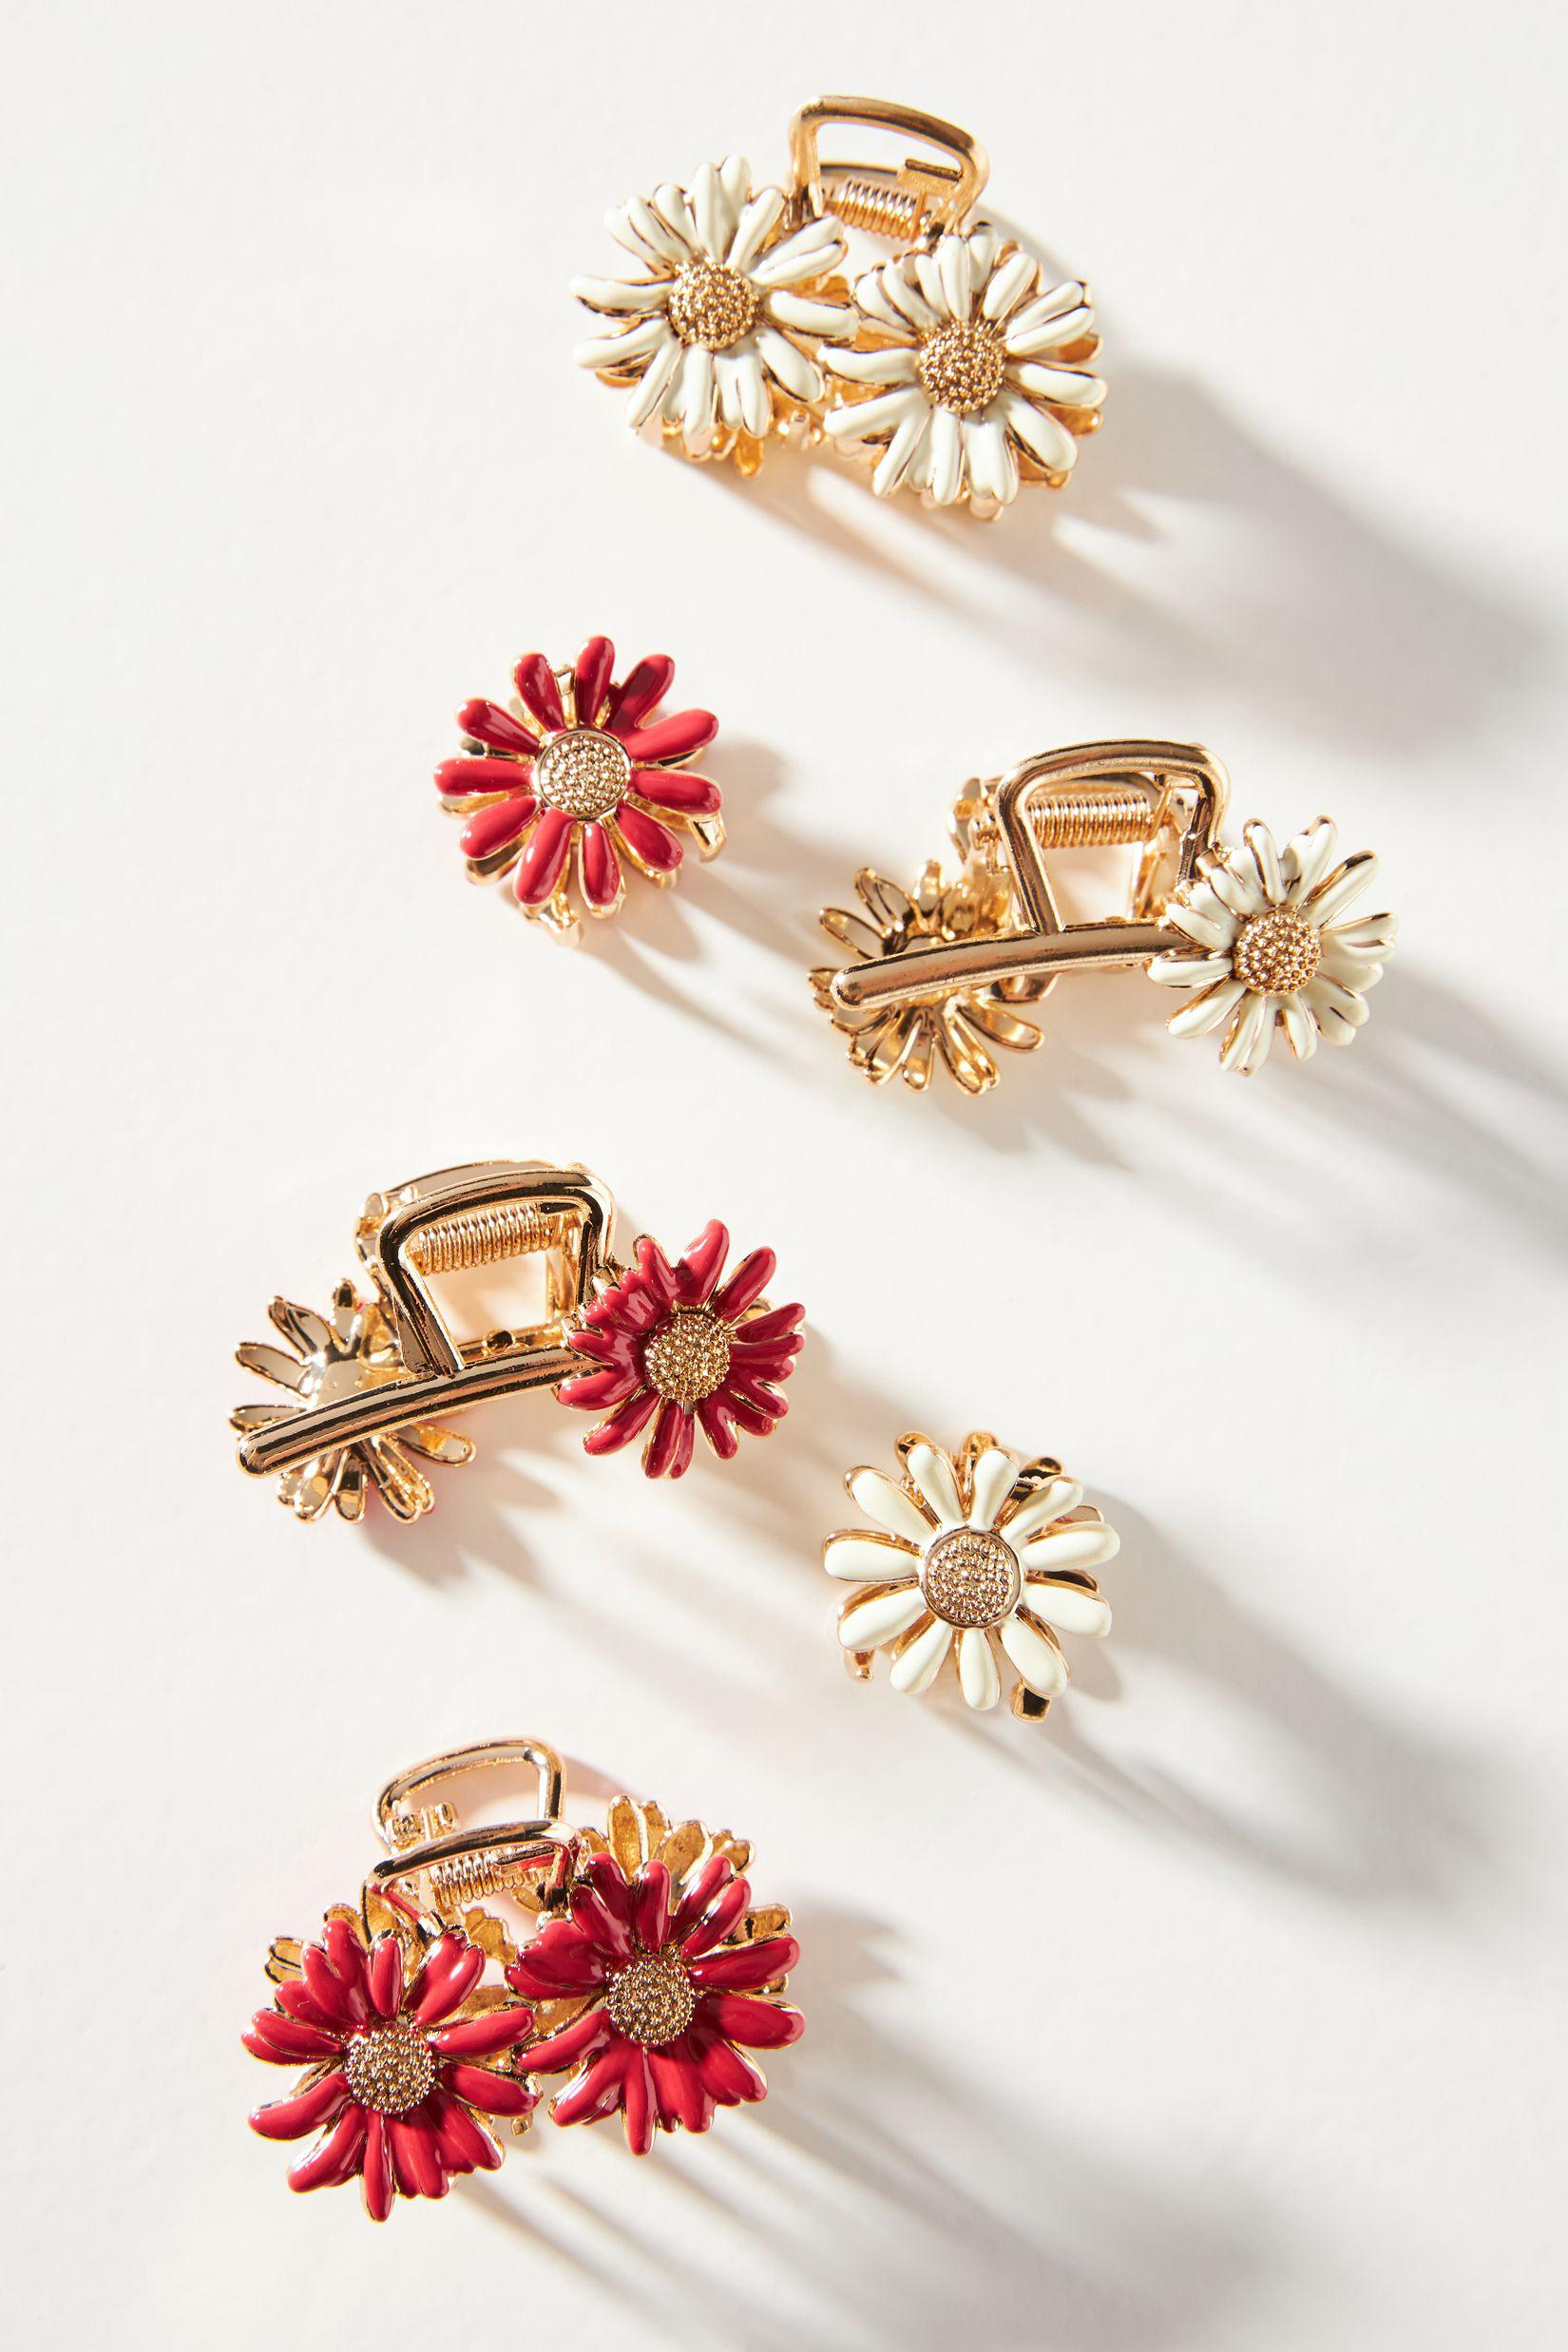 Daisy Embellished Claw Hair Clip Set